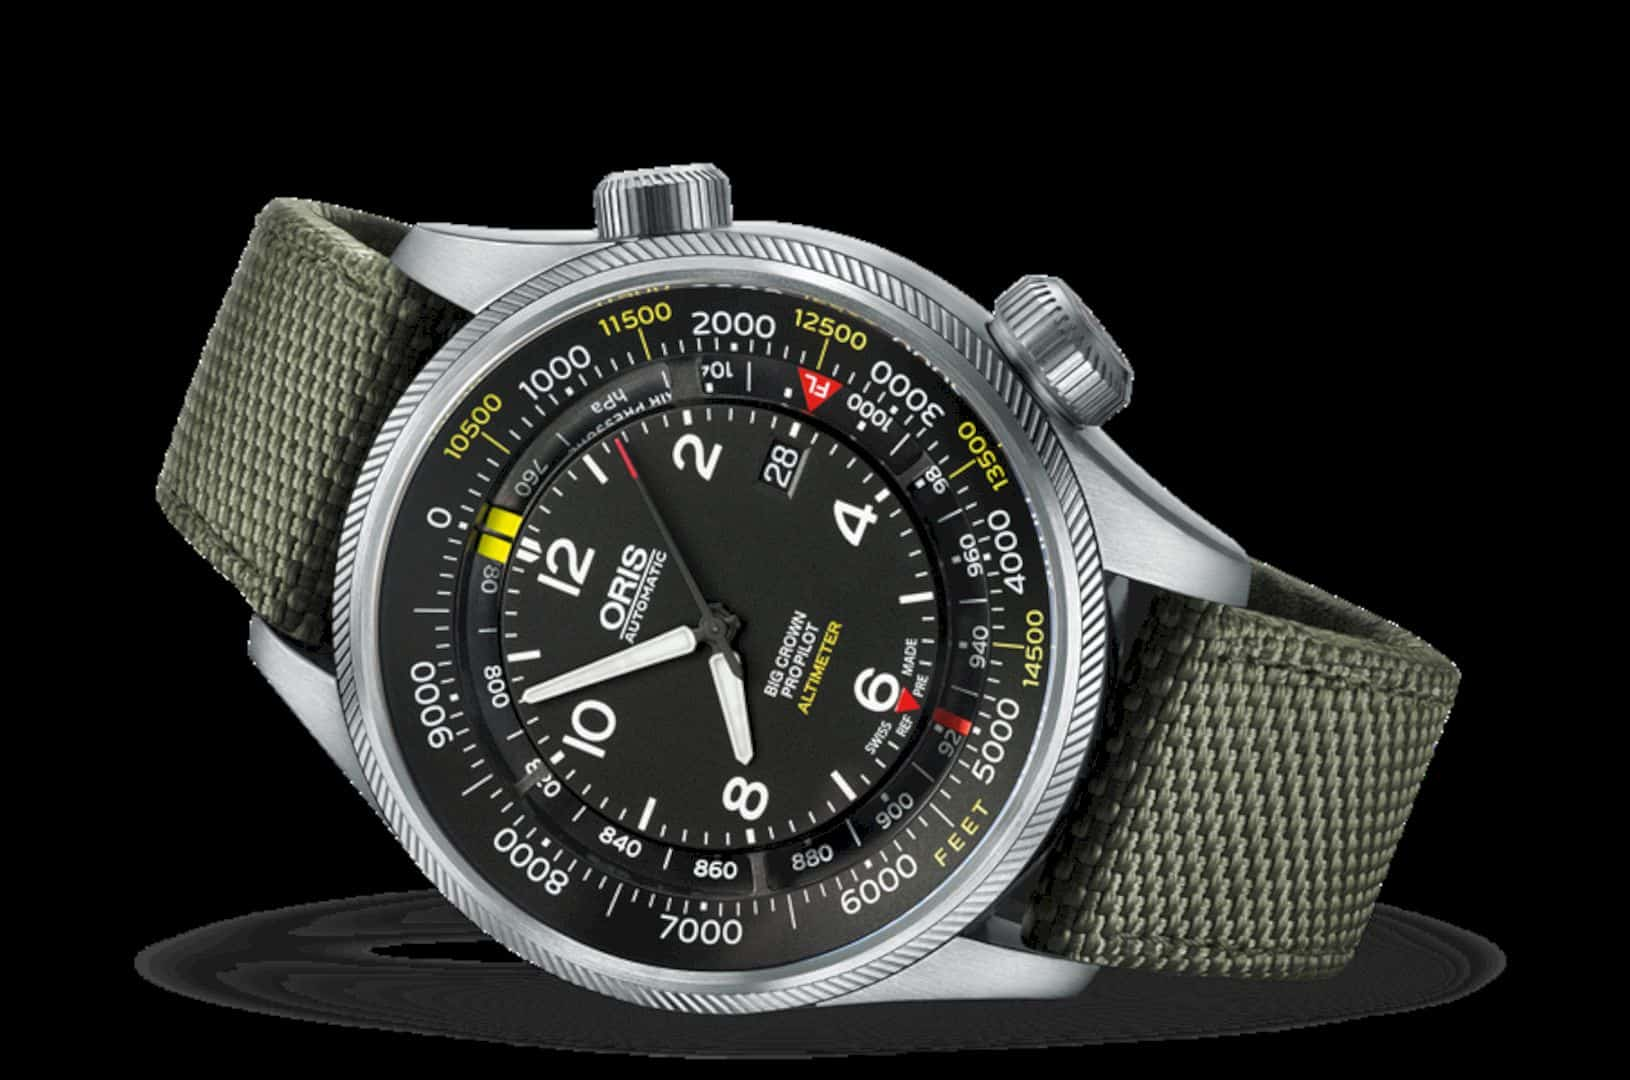 Oris Big Crown Propilot Altimeter With Feet Scale 1